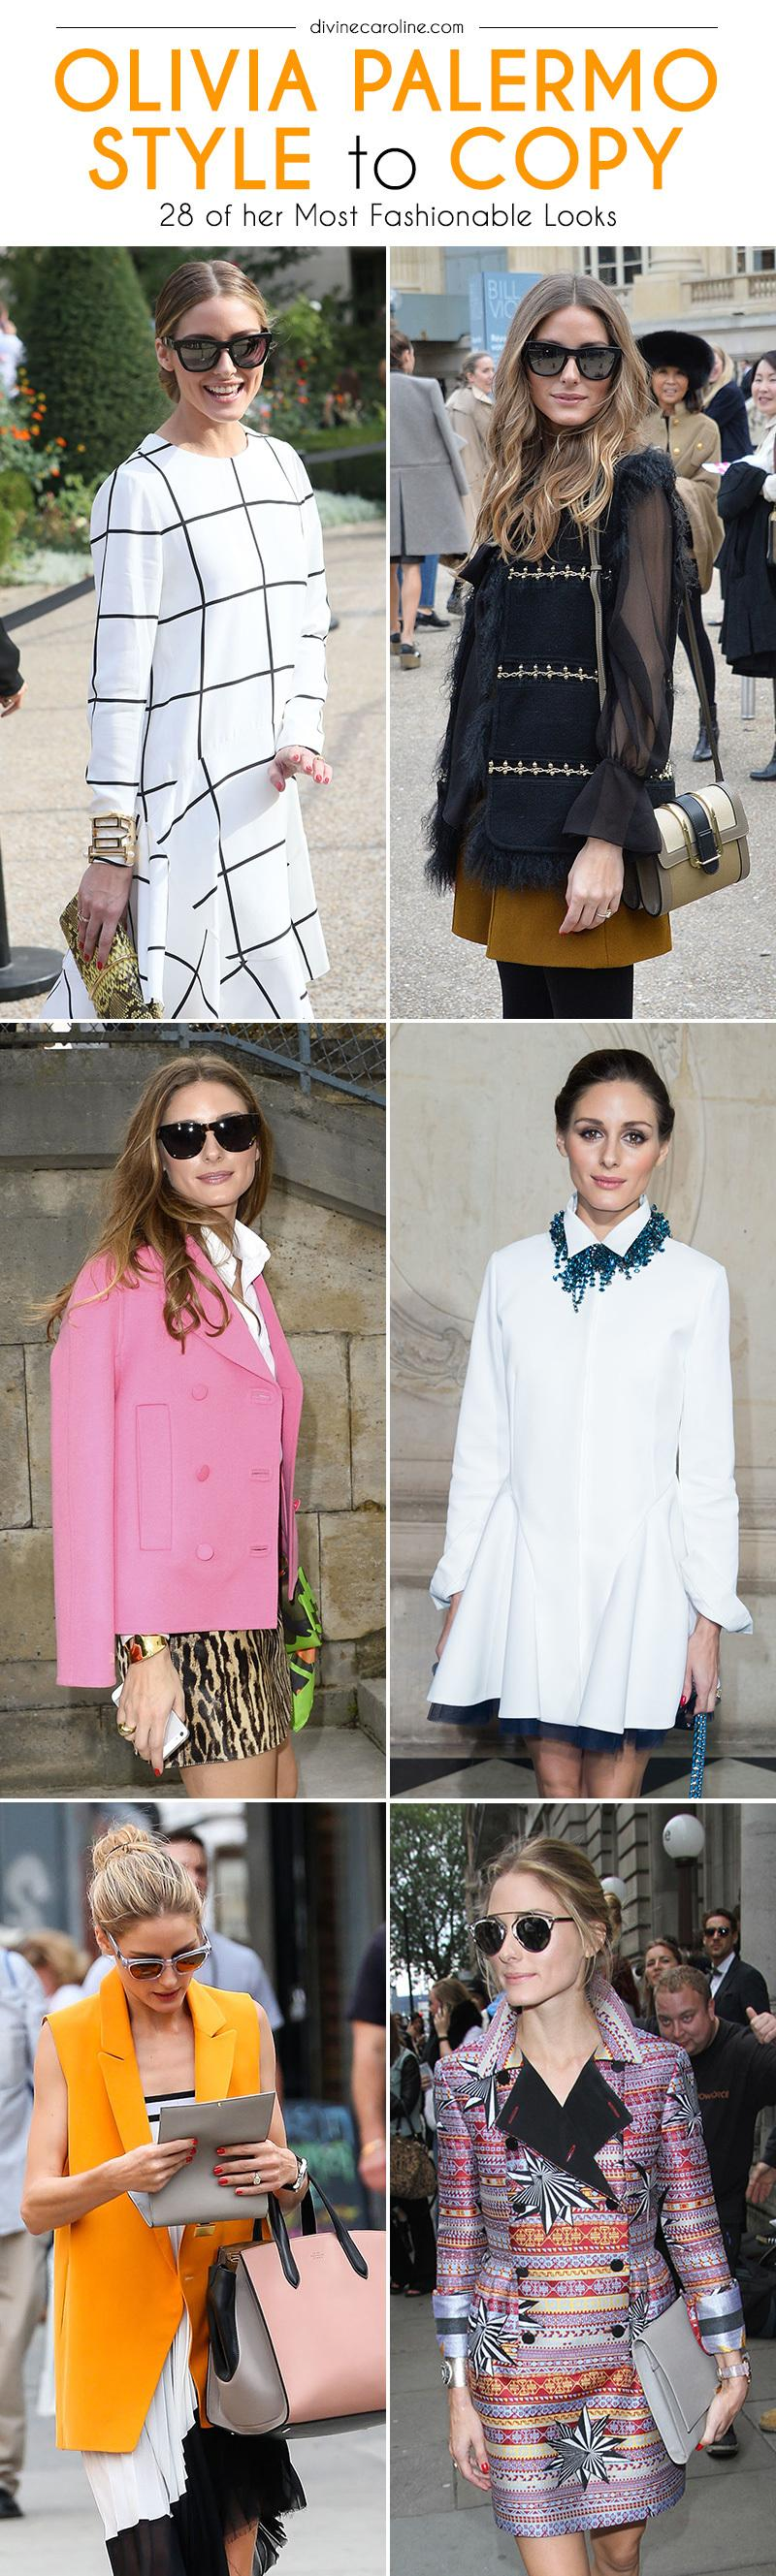 Olivia Palermo Style 28 Of Her Most Fashionable Looks